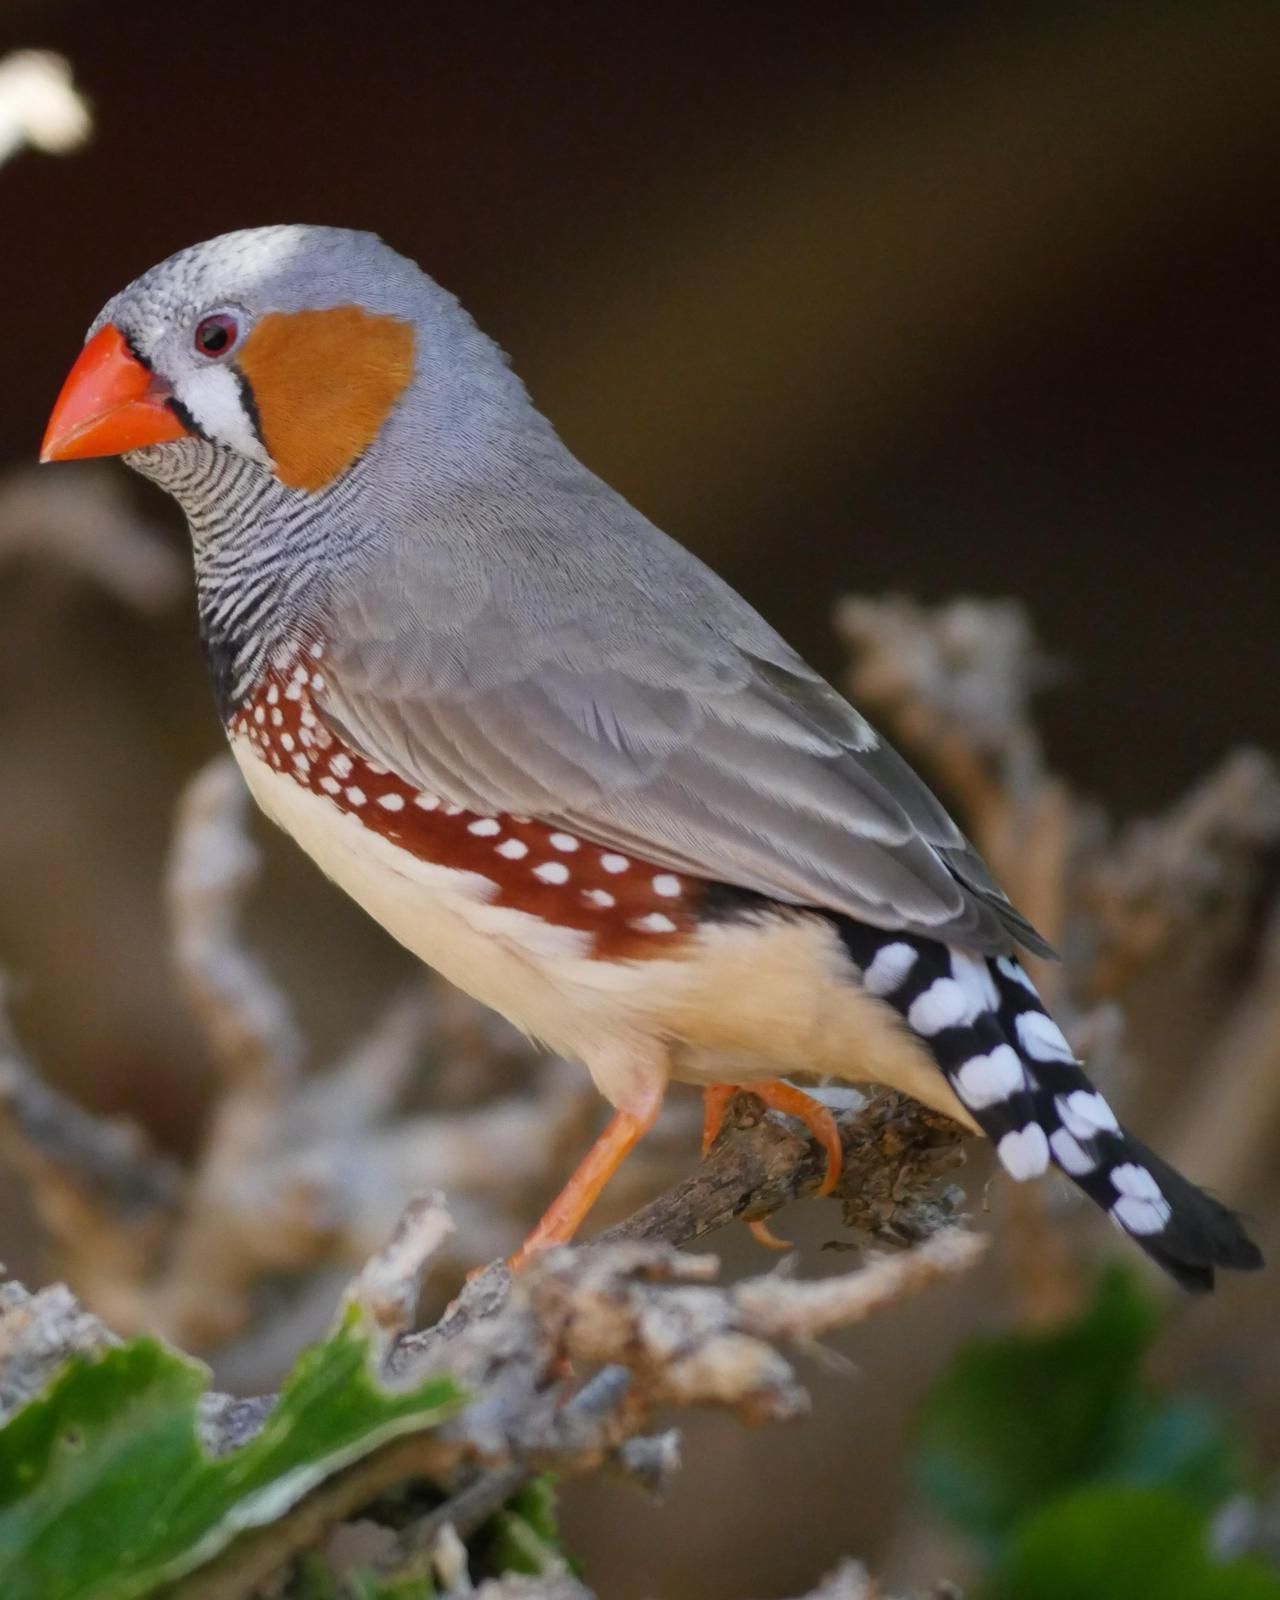 Zebra Finch (Australian) Photo by Peter Lowe